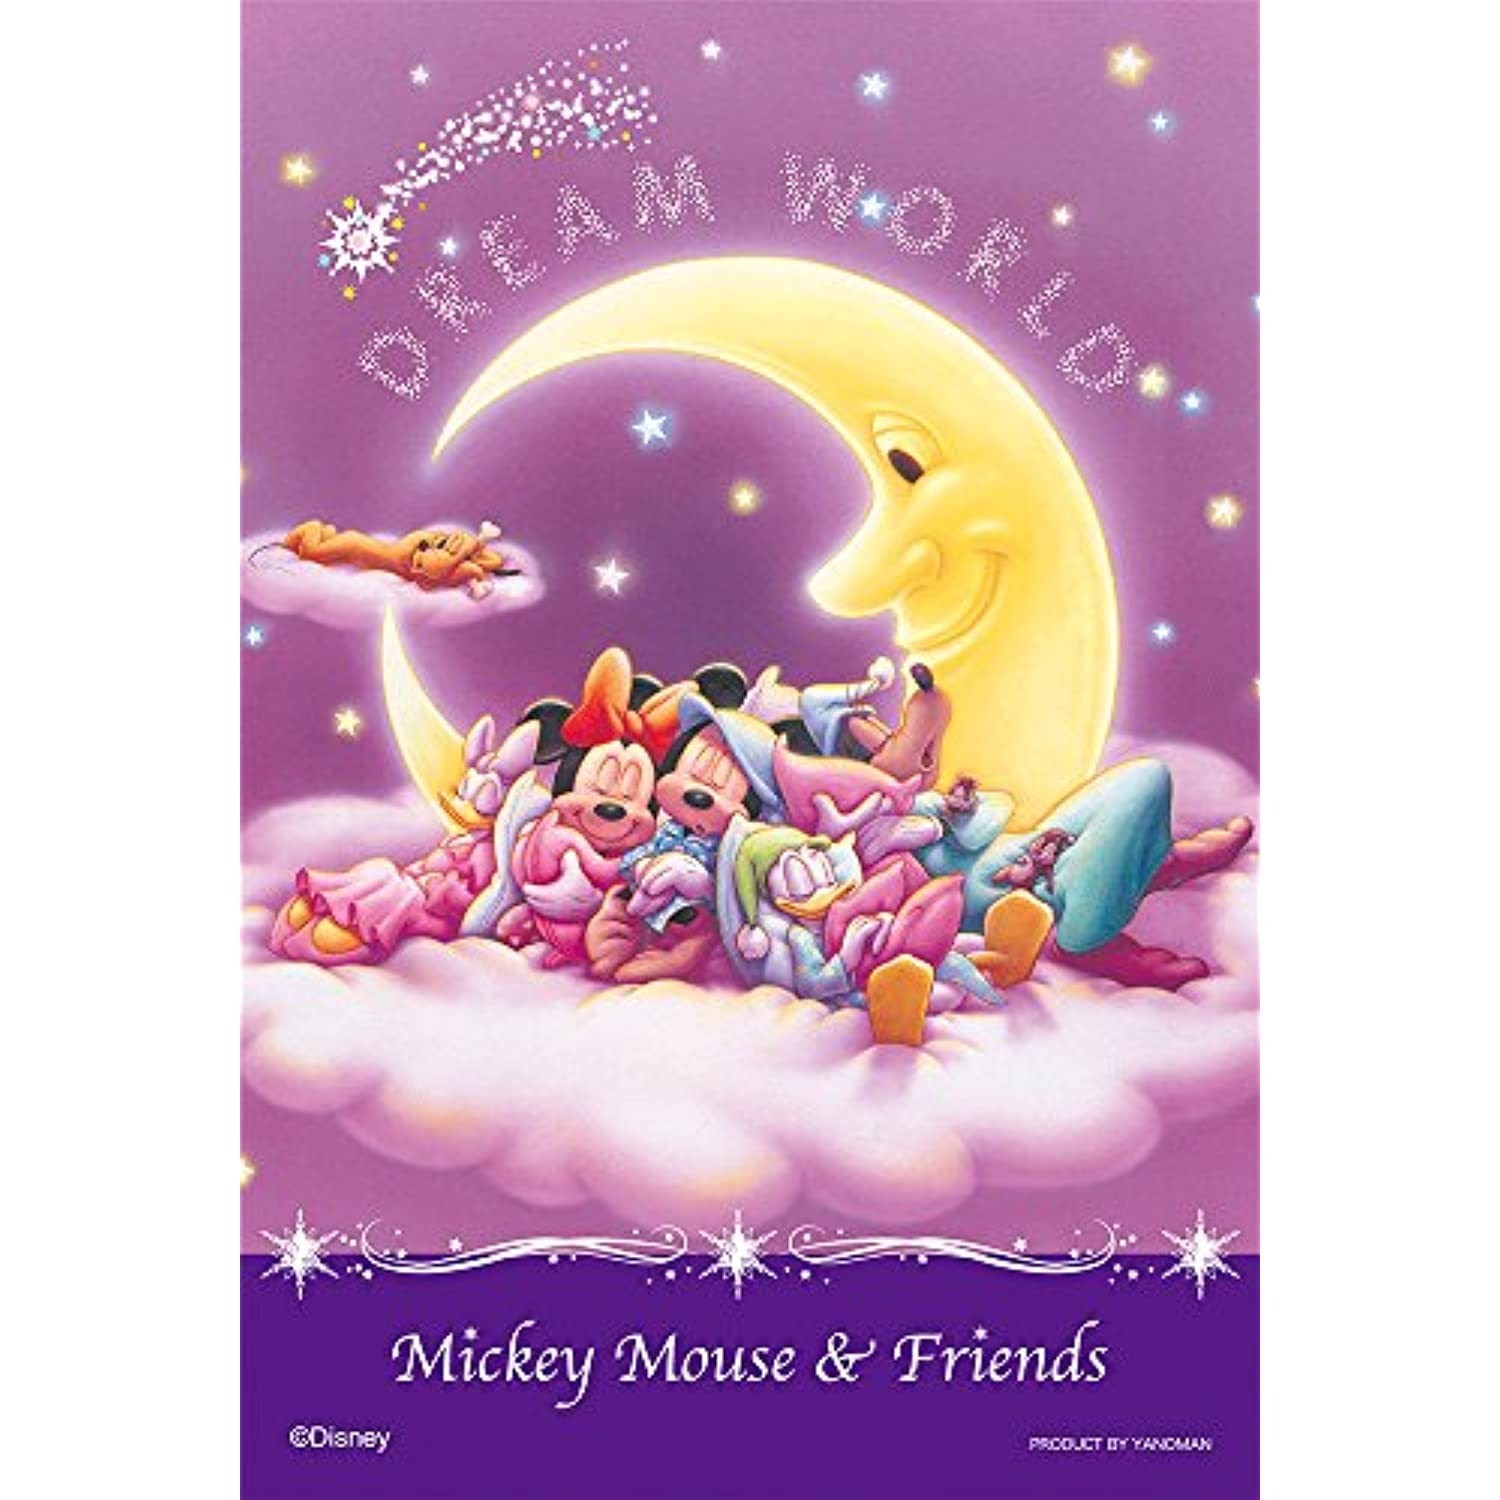 70 70 70 Piece prisme Art Petit Art Series coloré Disney Moonlight Good Night 97-62 b1a294